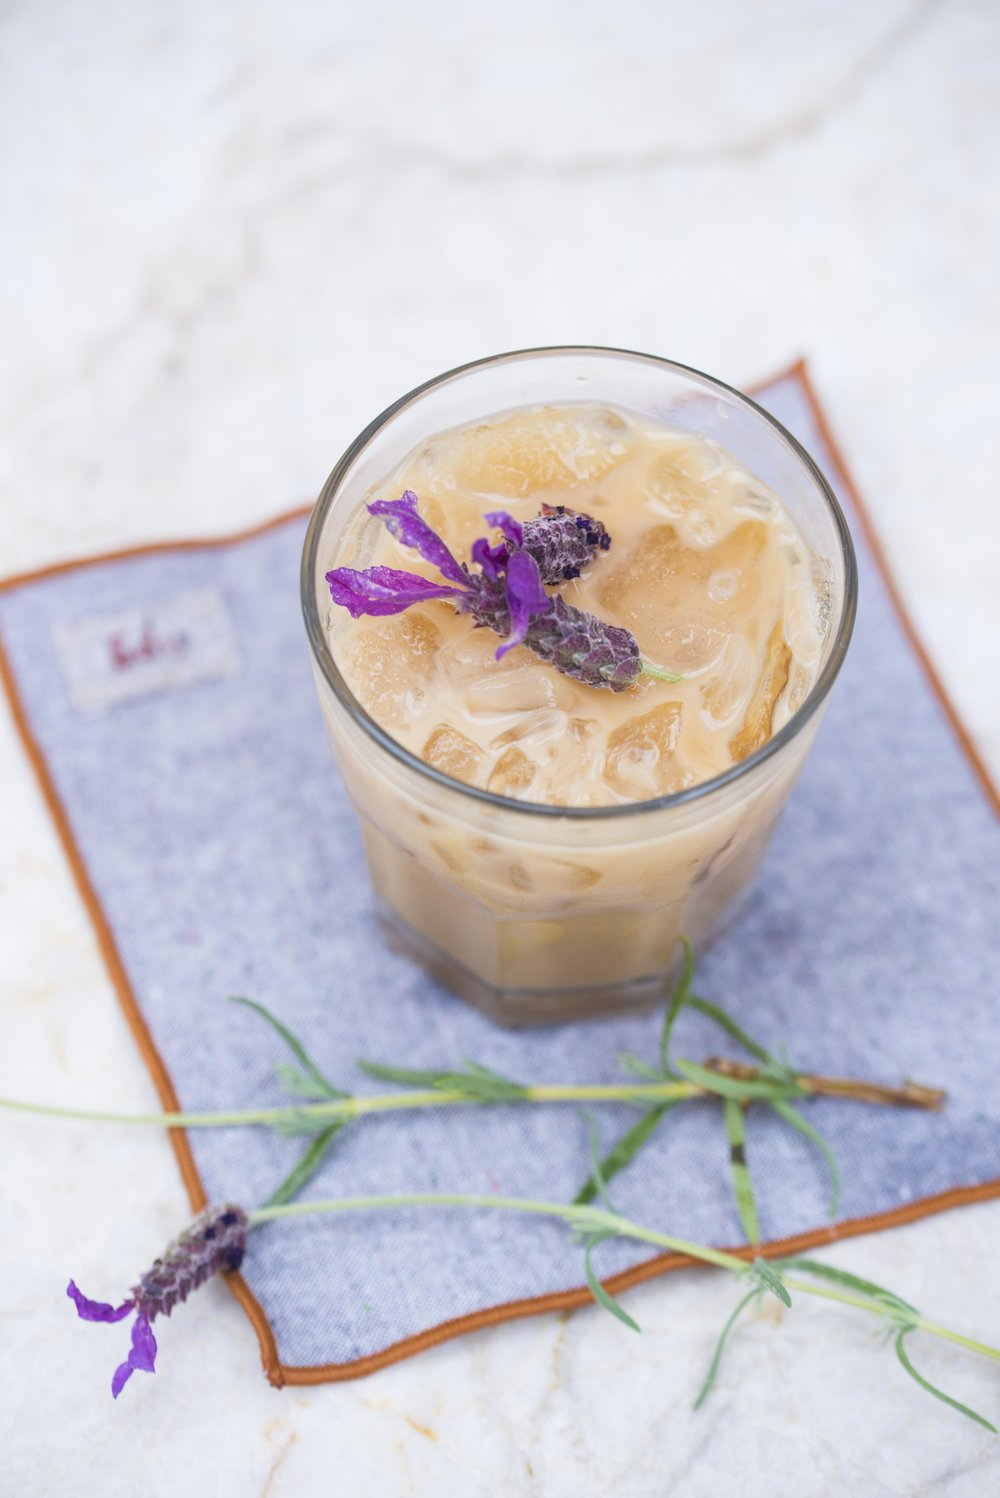 MIXED-AND-MEASURED-FOOD-BLOG-LAVENDER-HONEY-LATTE17.jpg